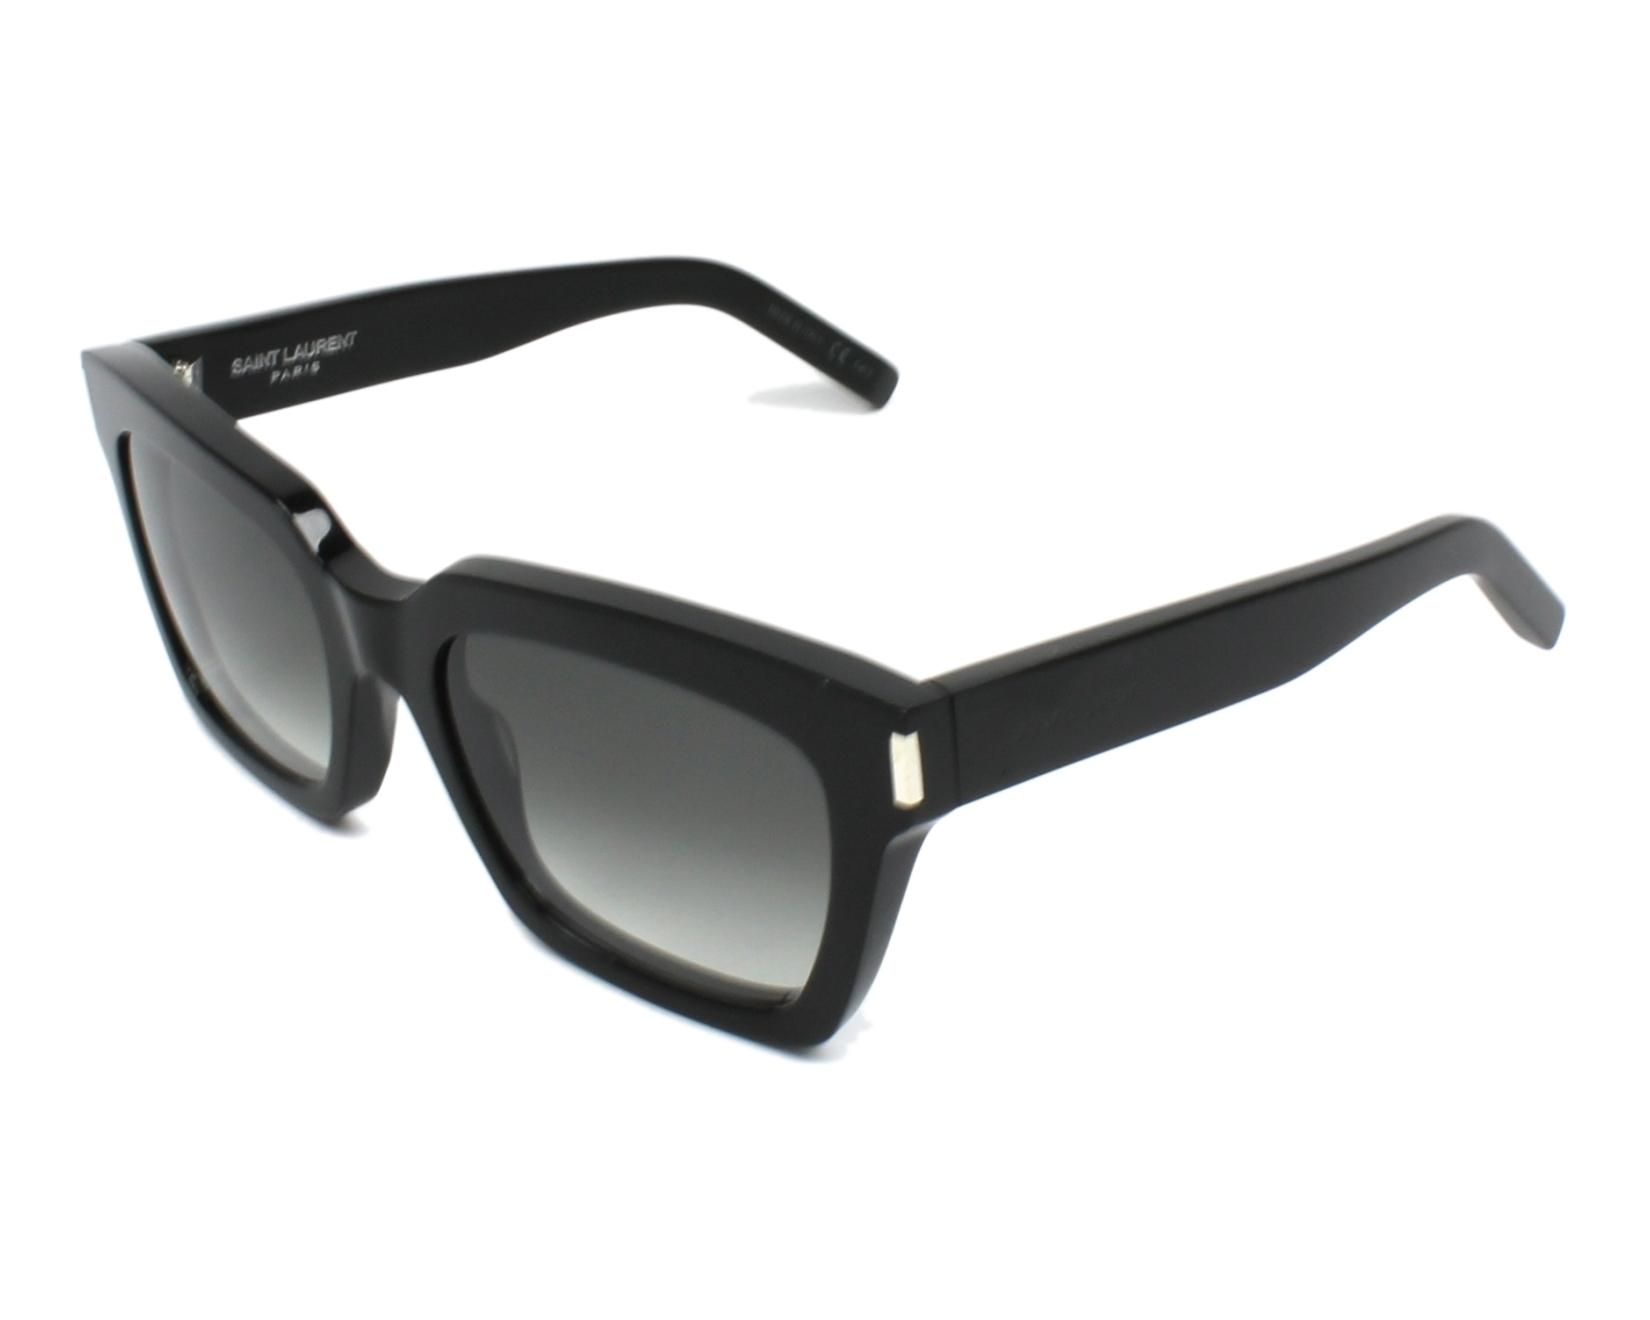 3765a8c08799fd Sunglasses Yves Saint Laurent BOLD-1 001 54-20 Black profile view